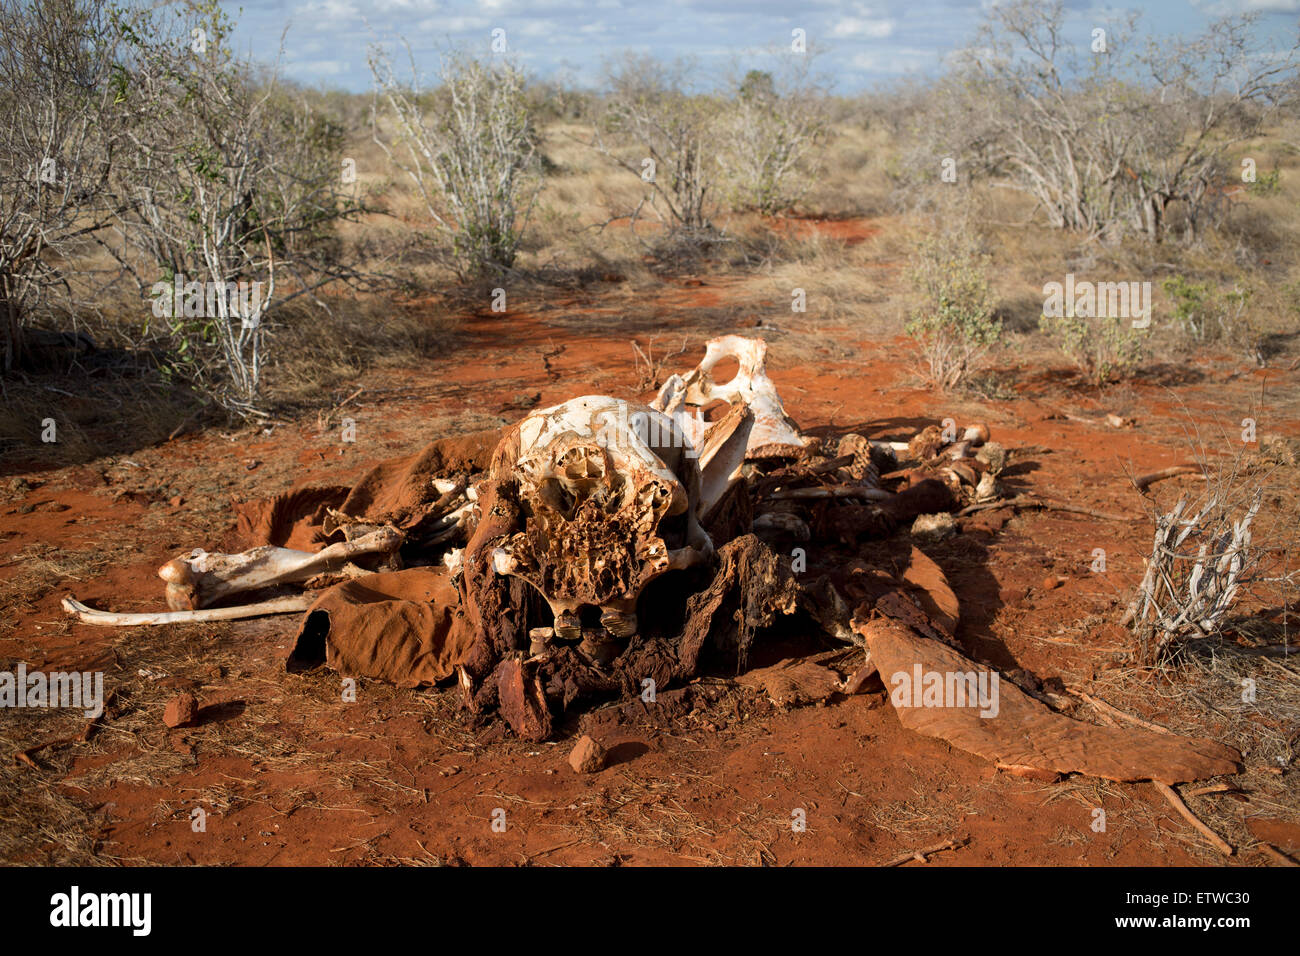 The remains of an elephant that was killed by poachers with a machine gun around four weeks ago in the Tsavo East - Stock Image